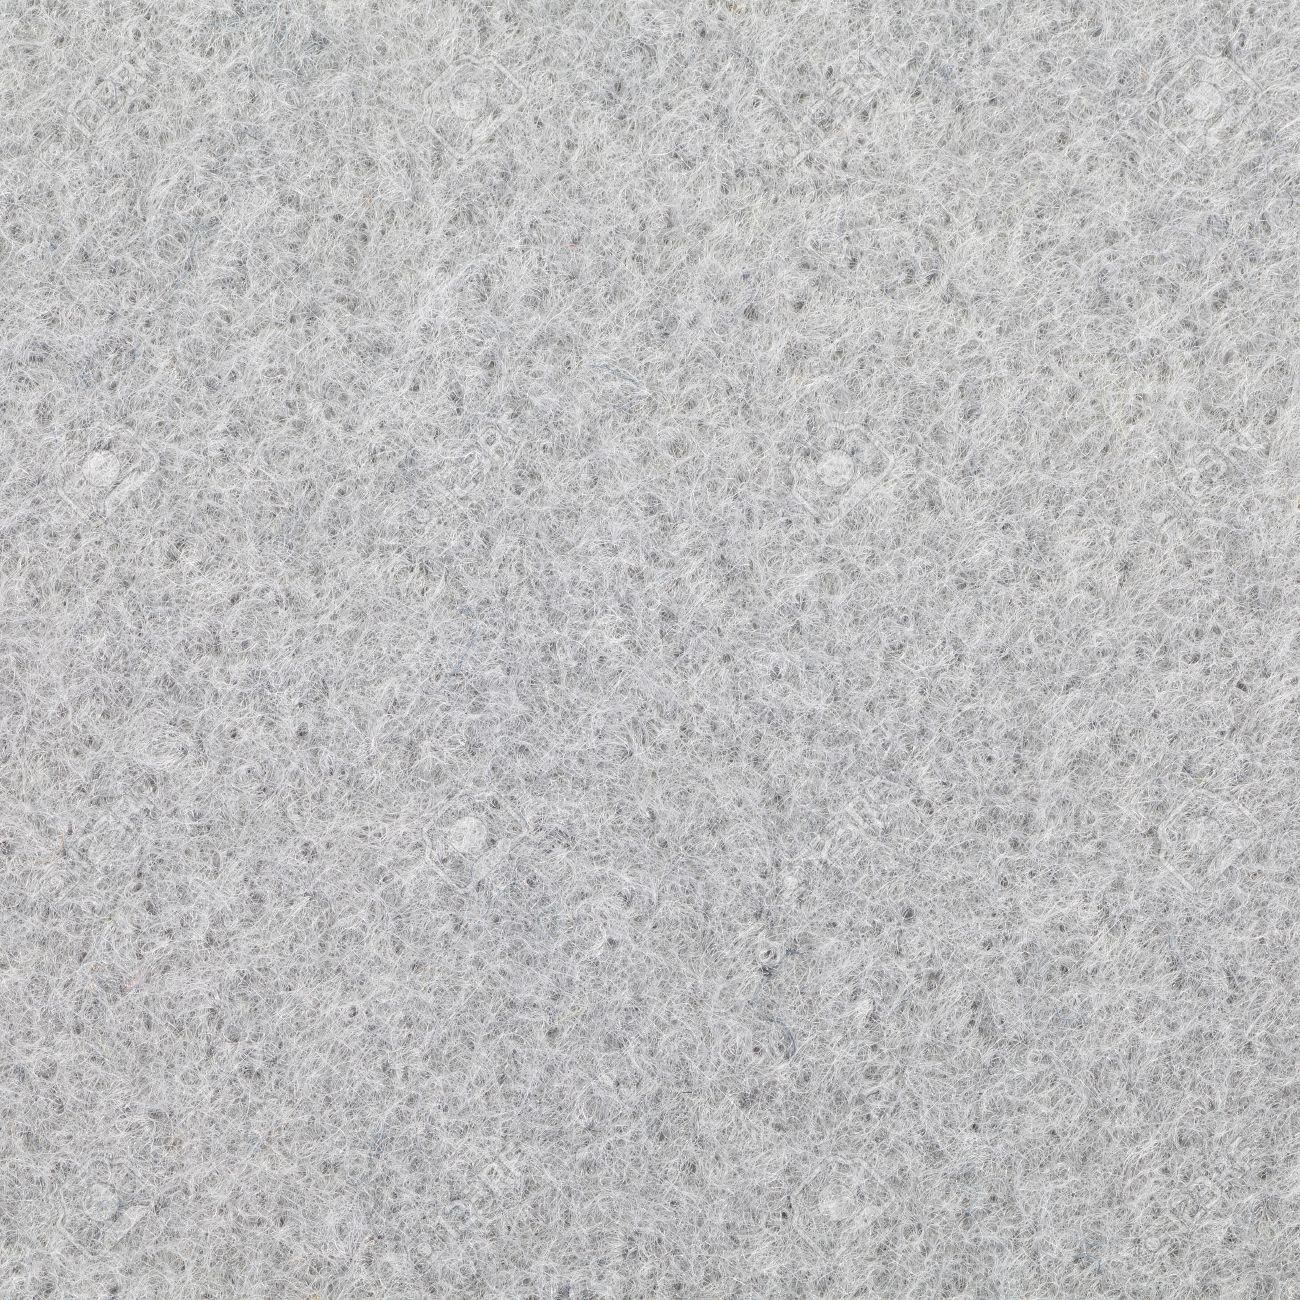 Gray Fabric Felt Texture And Background Seamless Stock Photo ... for Grey Fabric Texture Seamless  300lyp